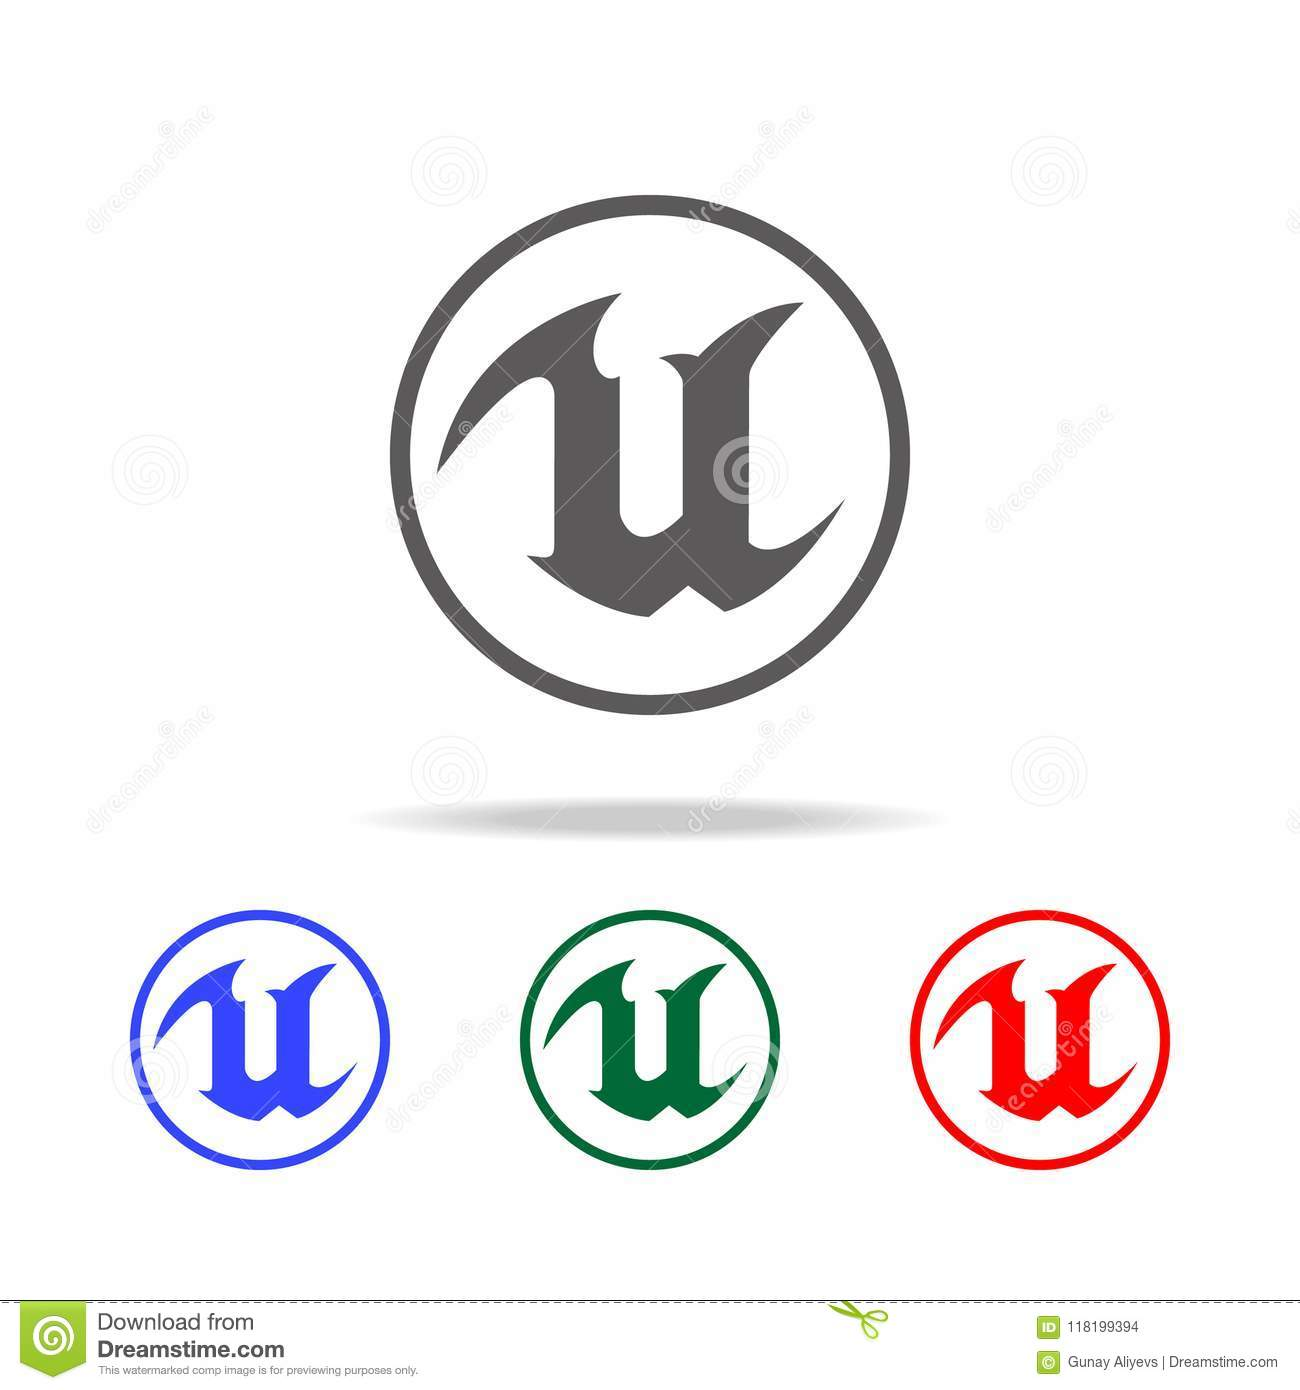 Logo for letter U icon. Elements of game life in multi colored icons. Premium quality graphic design icon. Simple icon for website